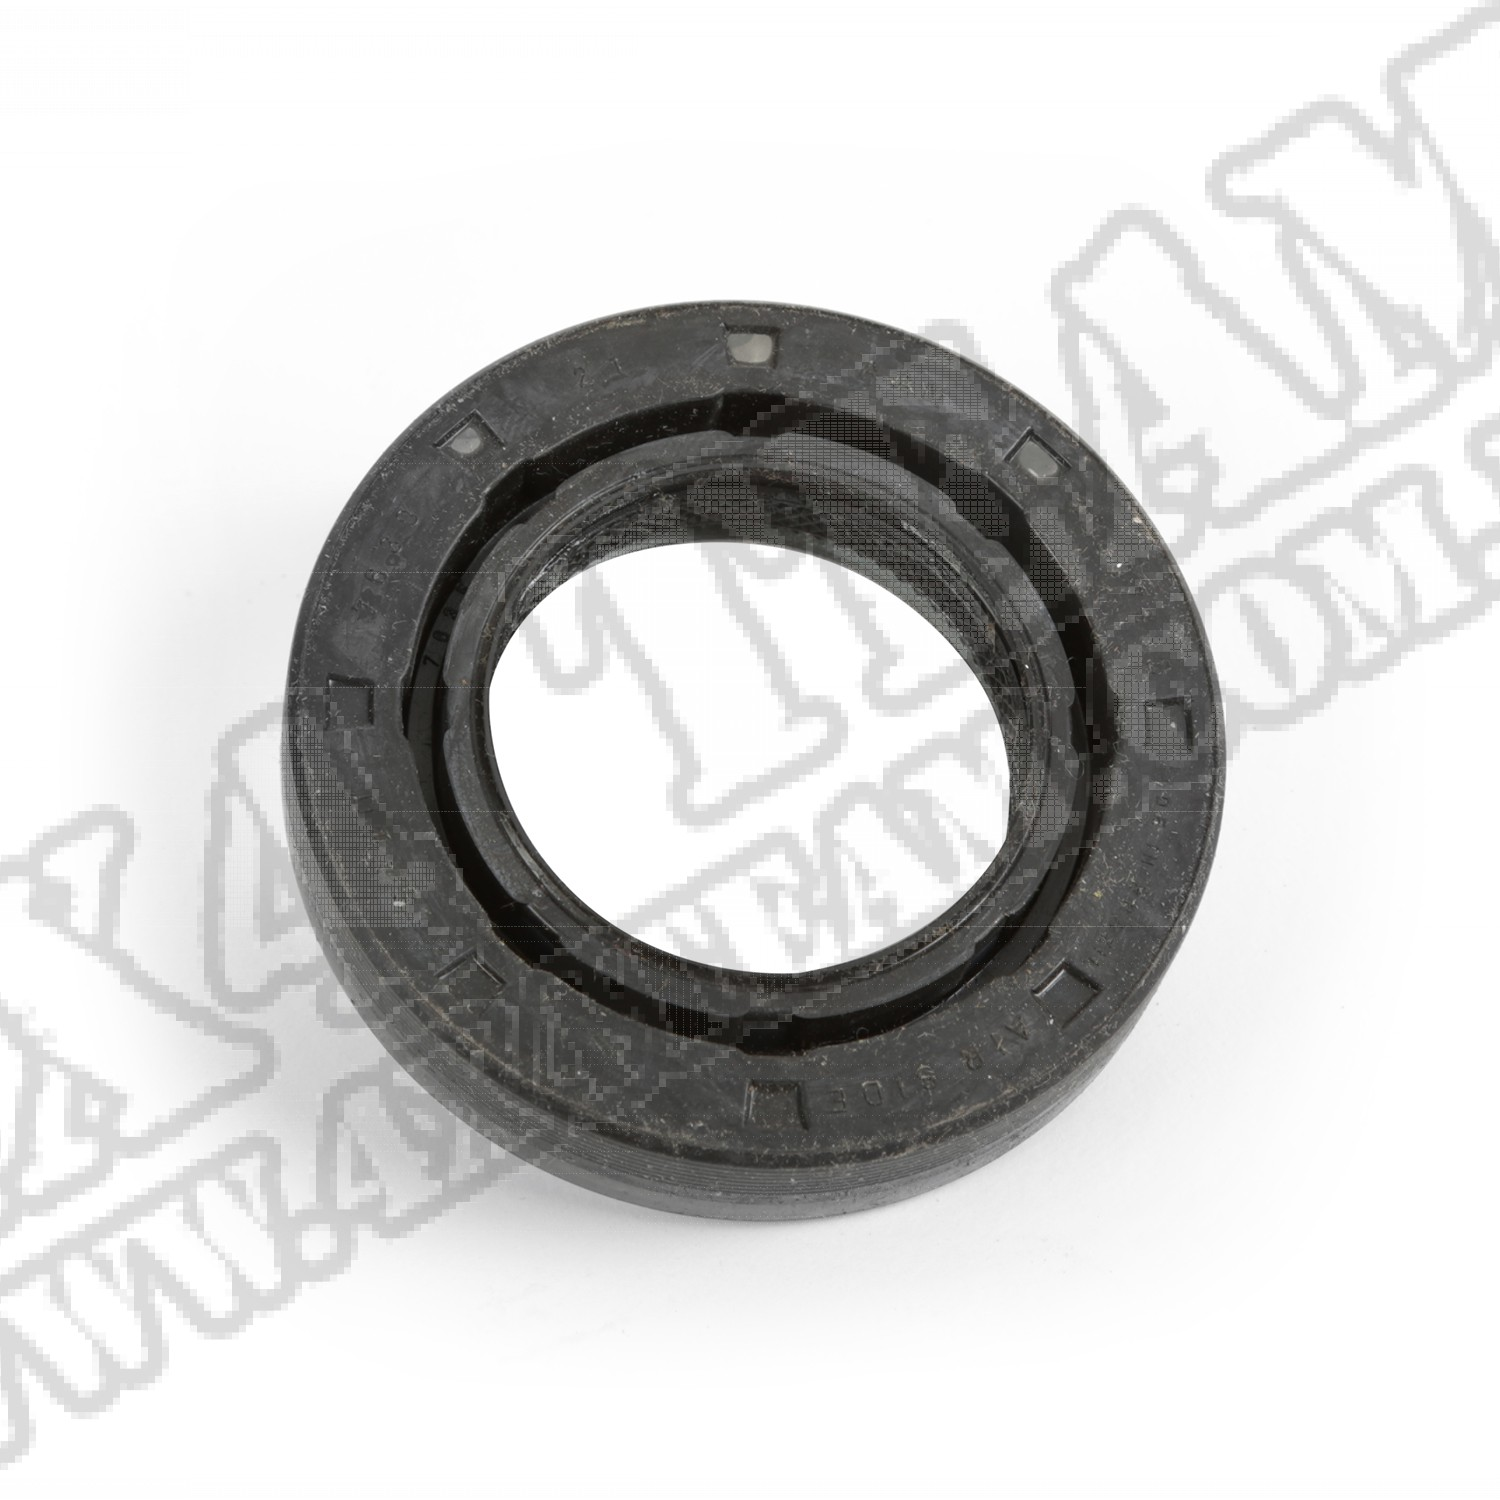 Oil Seal, Front, Inner, IFS; 97-14 Chevrolet/GMC, 7.25 Inch Axles